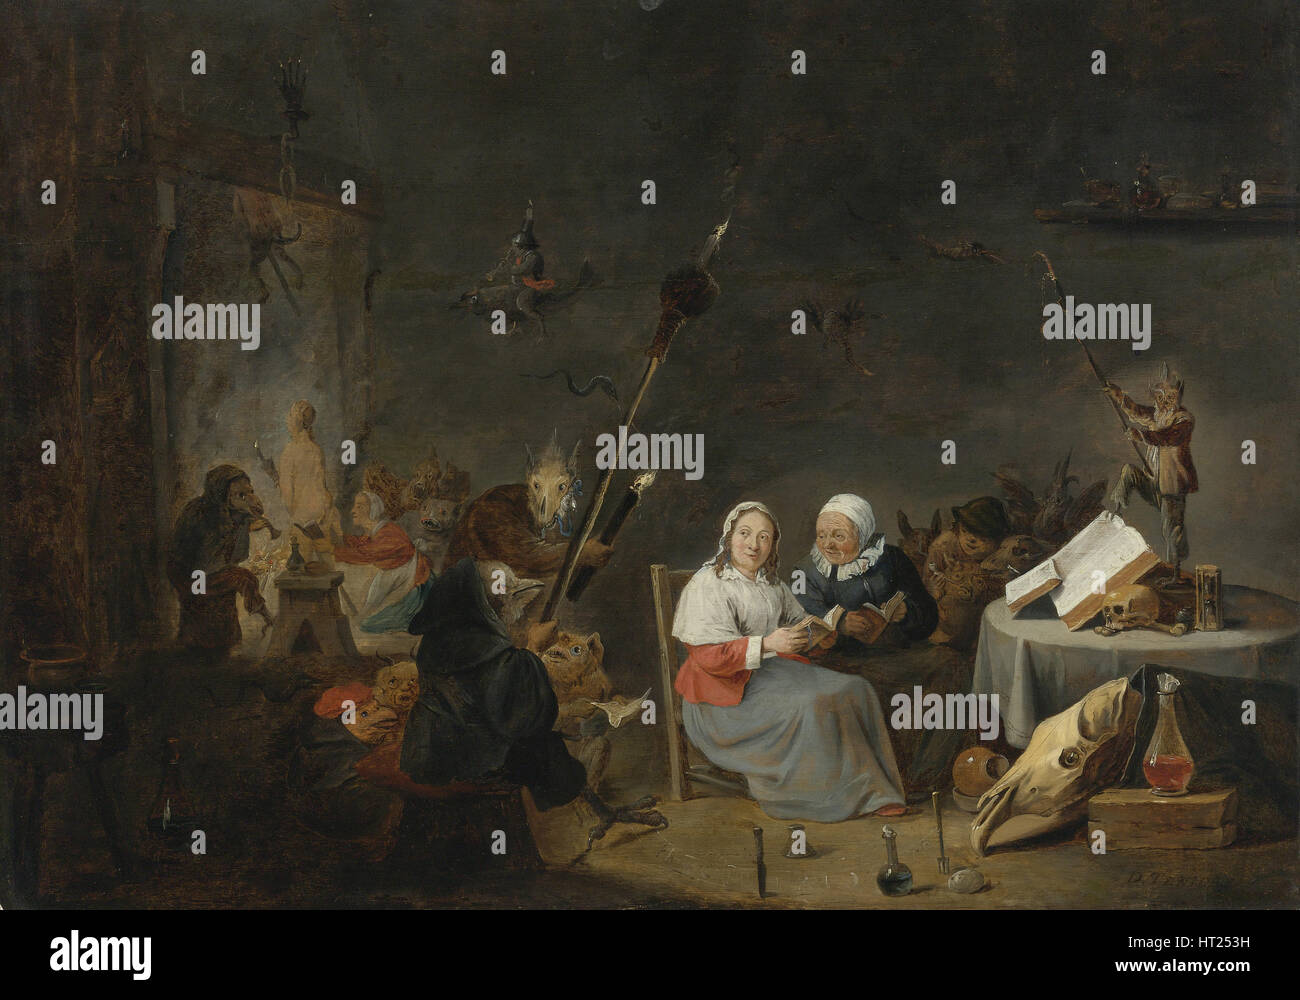 The Witches' Sabbath. Artist: Teniers, David, the Younger (1610-1690) - Stock Image